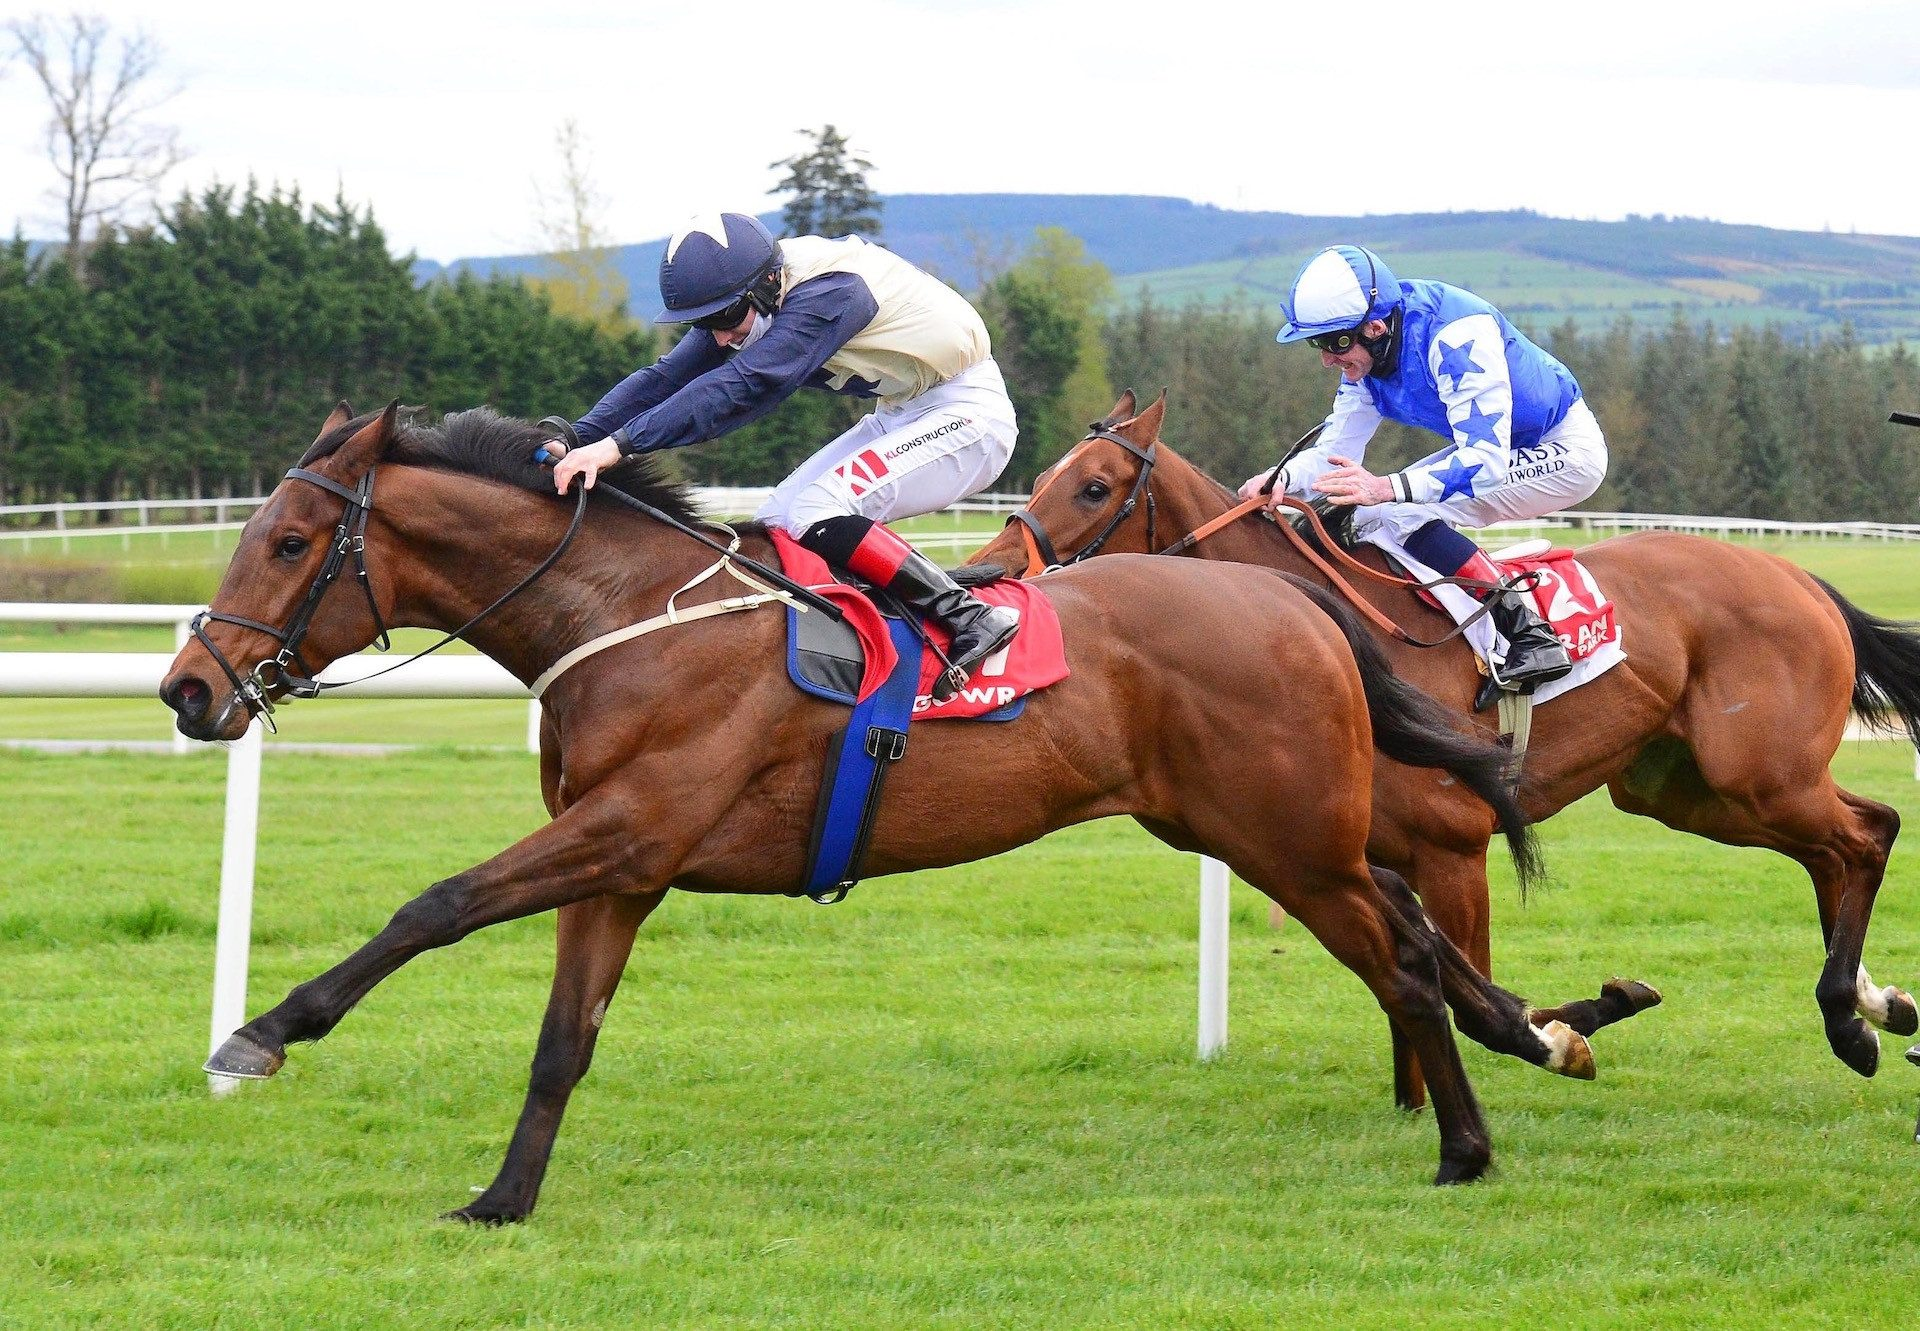 Lust (Fastnet Rock) Wins His Maiden At Gowran Park